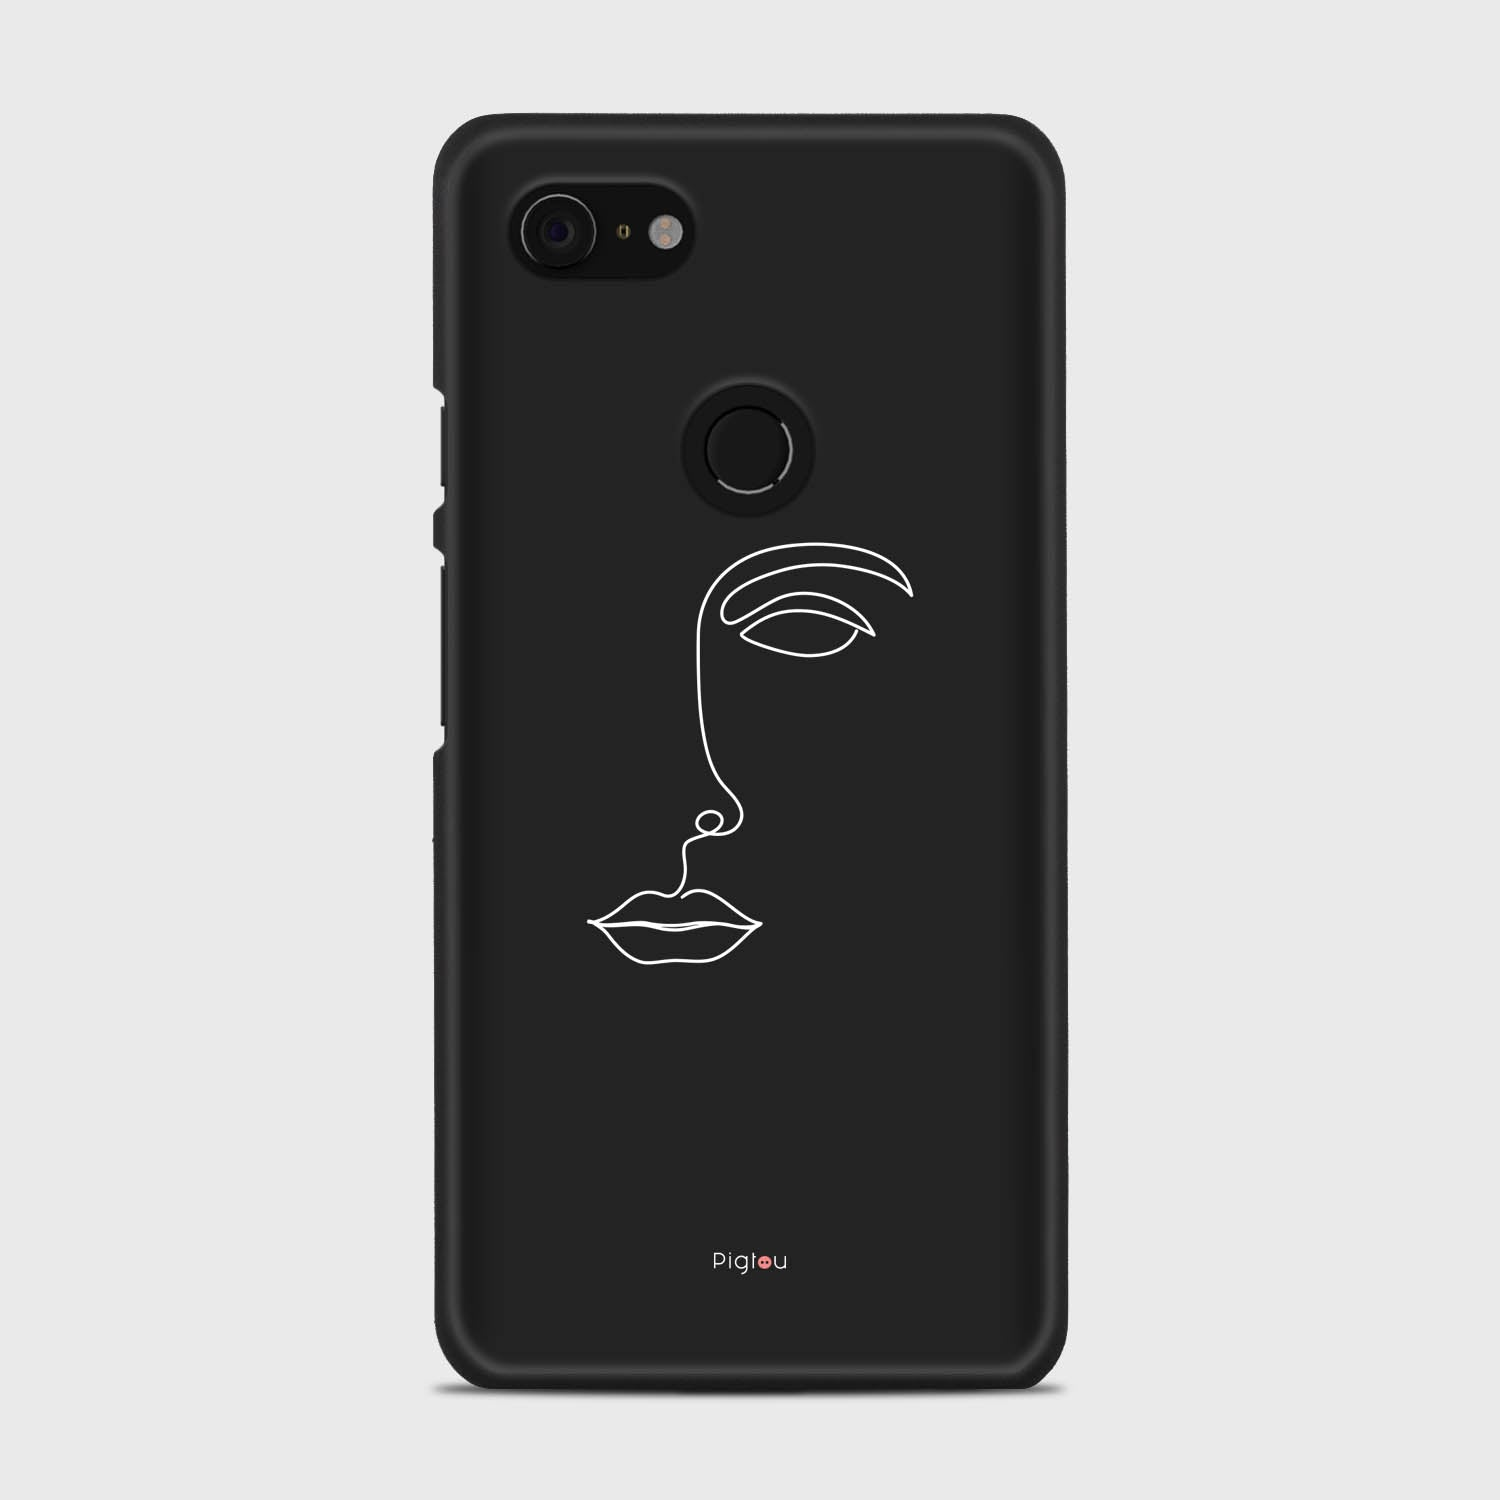 SILHOUETTE FACE Google Pixel 3 XL cases | Pigtou